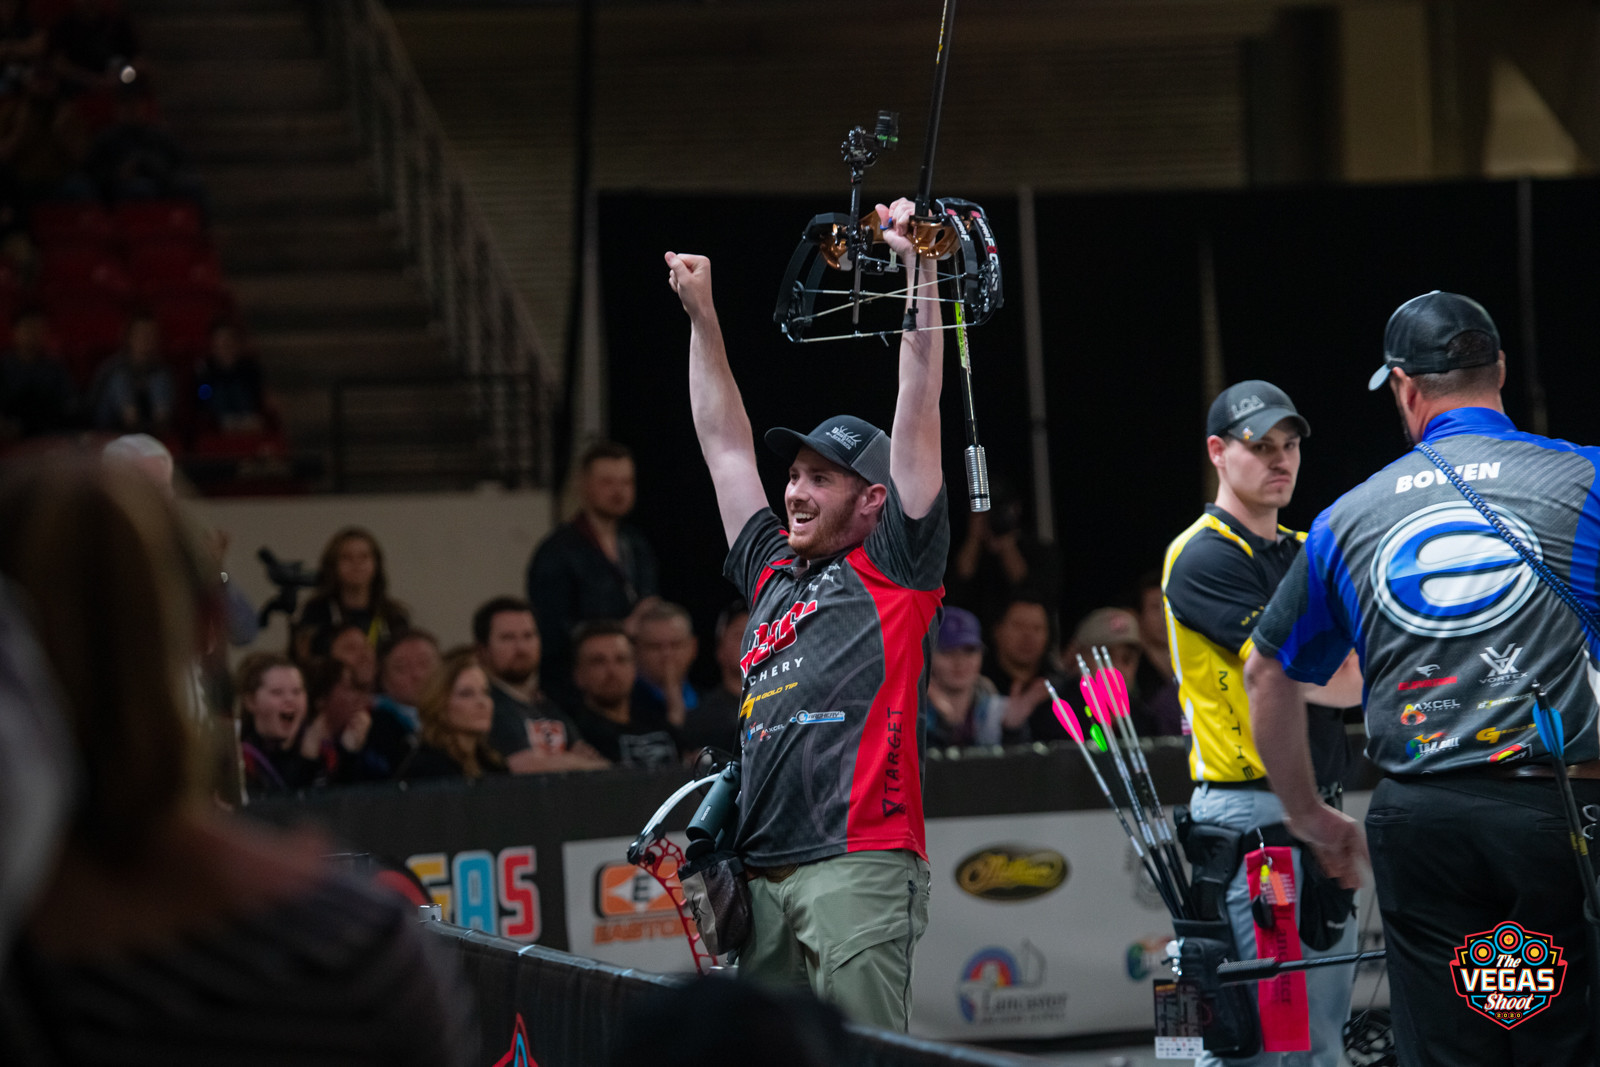 Douglas crowned Vegas Shoot archery champion